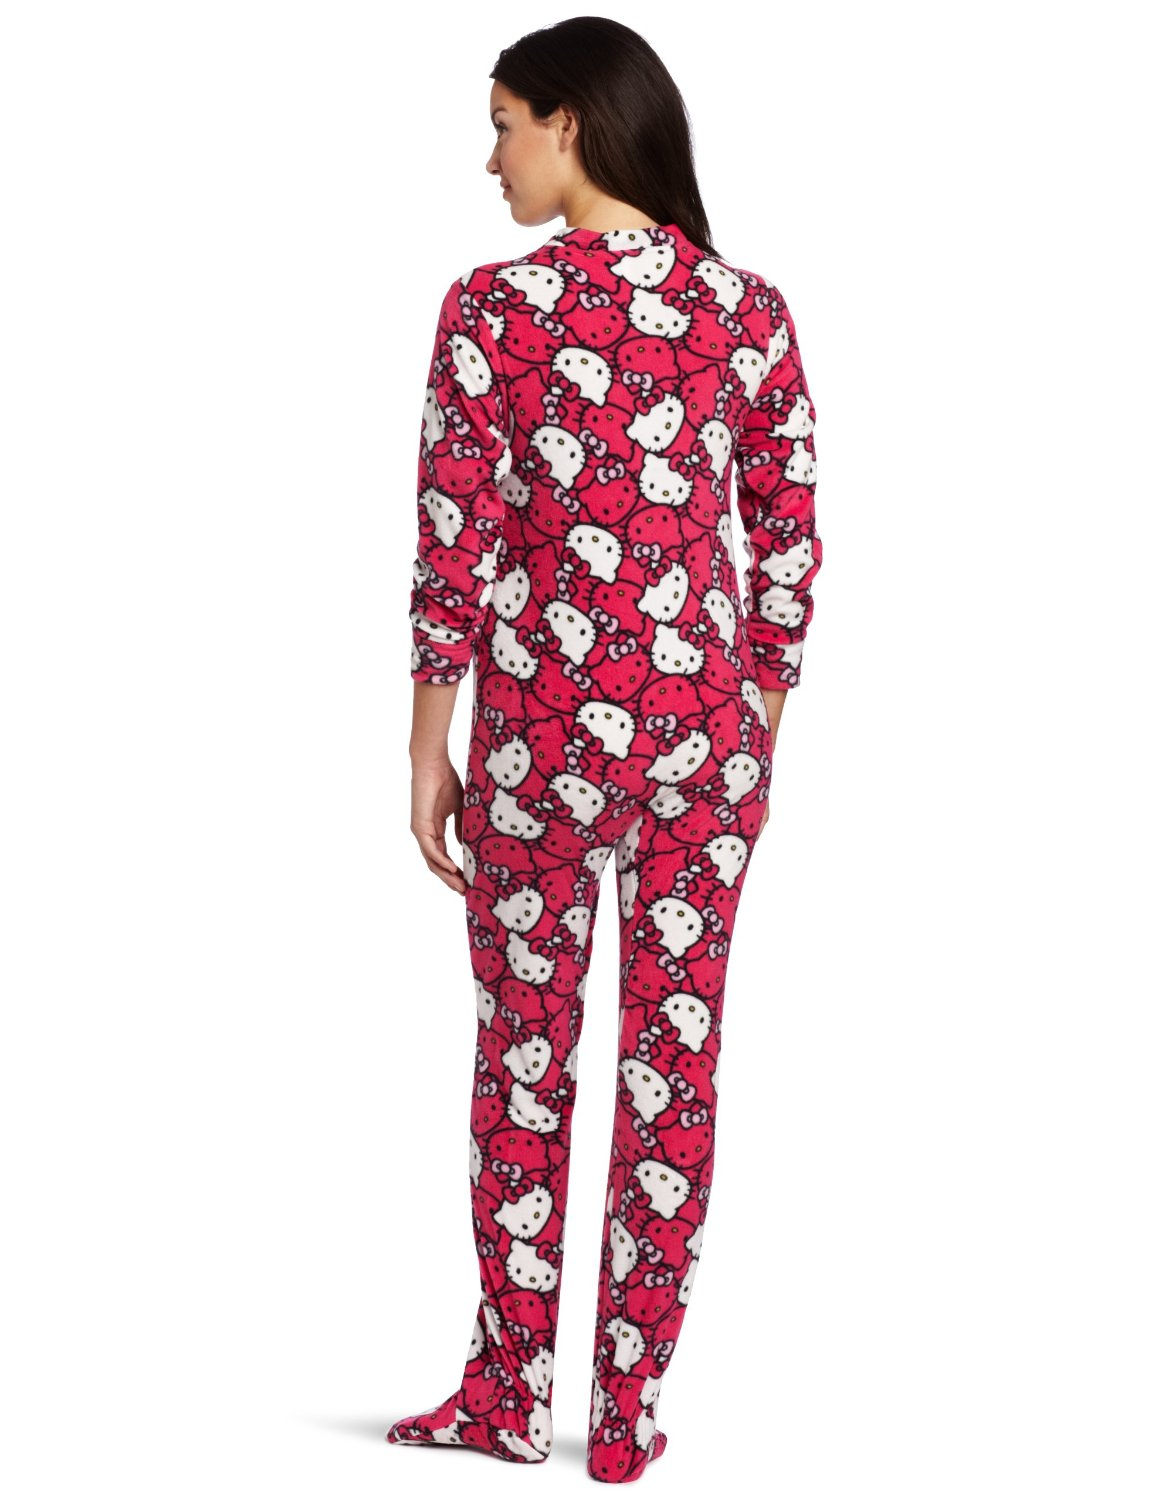 Adults Pajamas 80